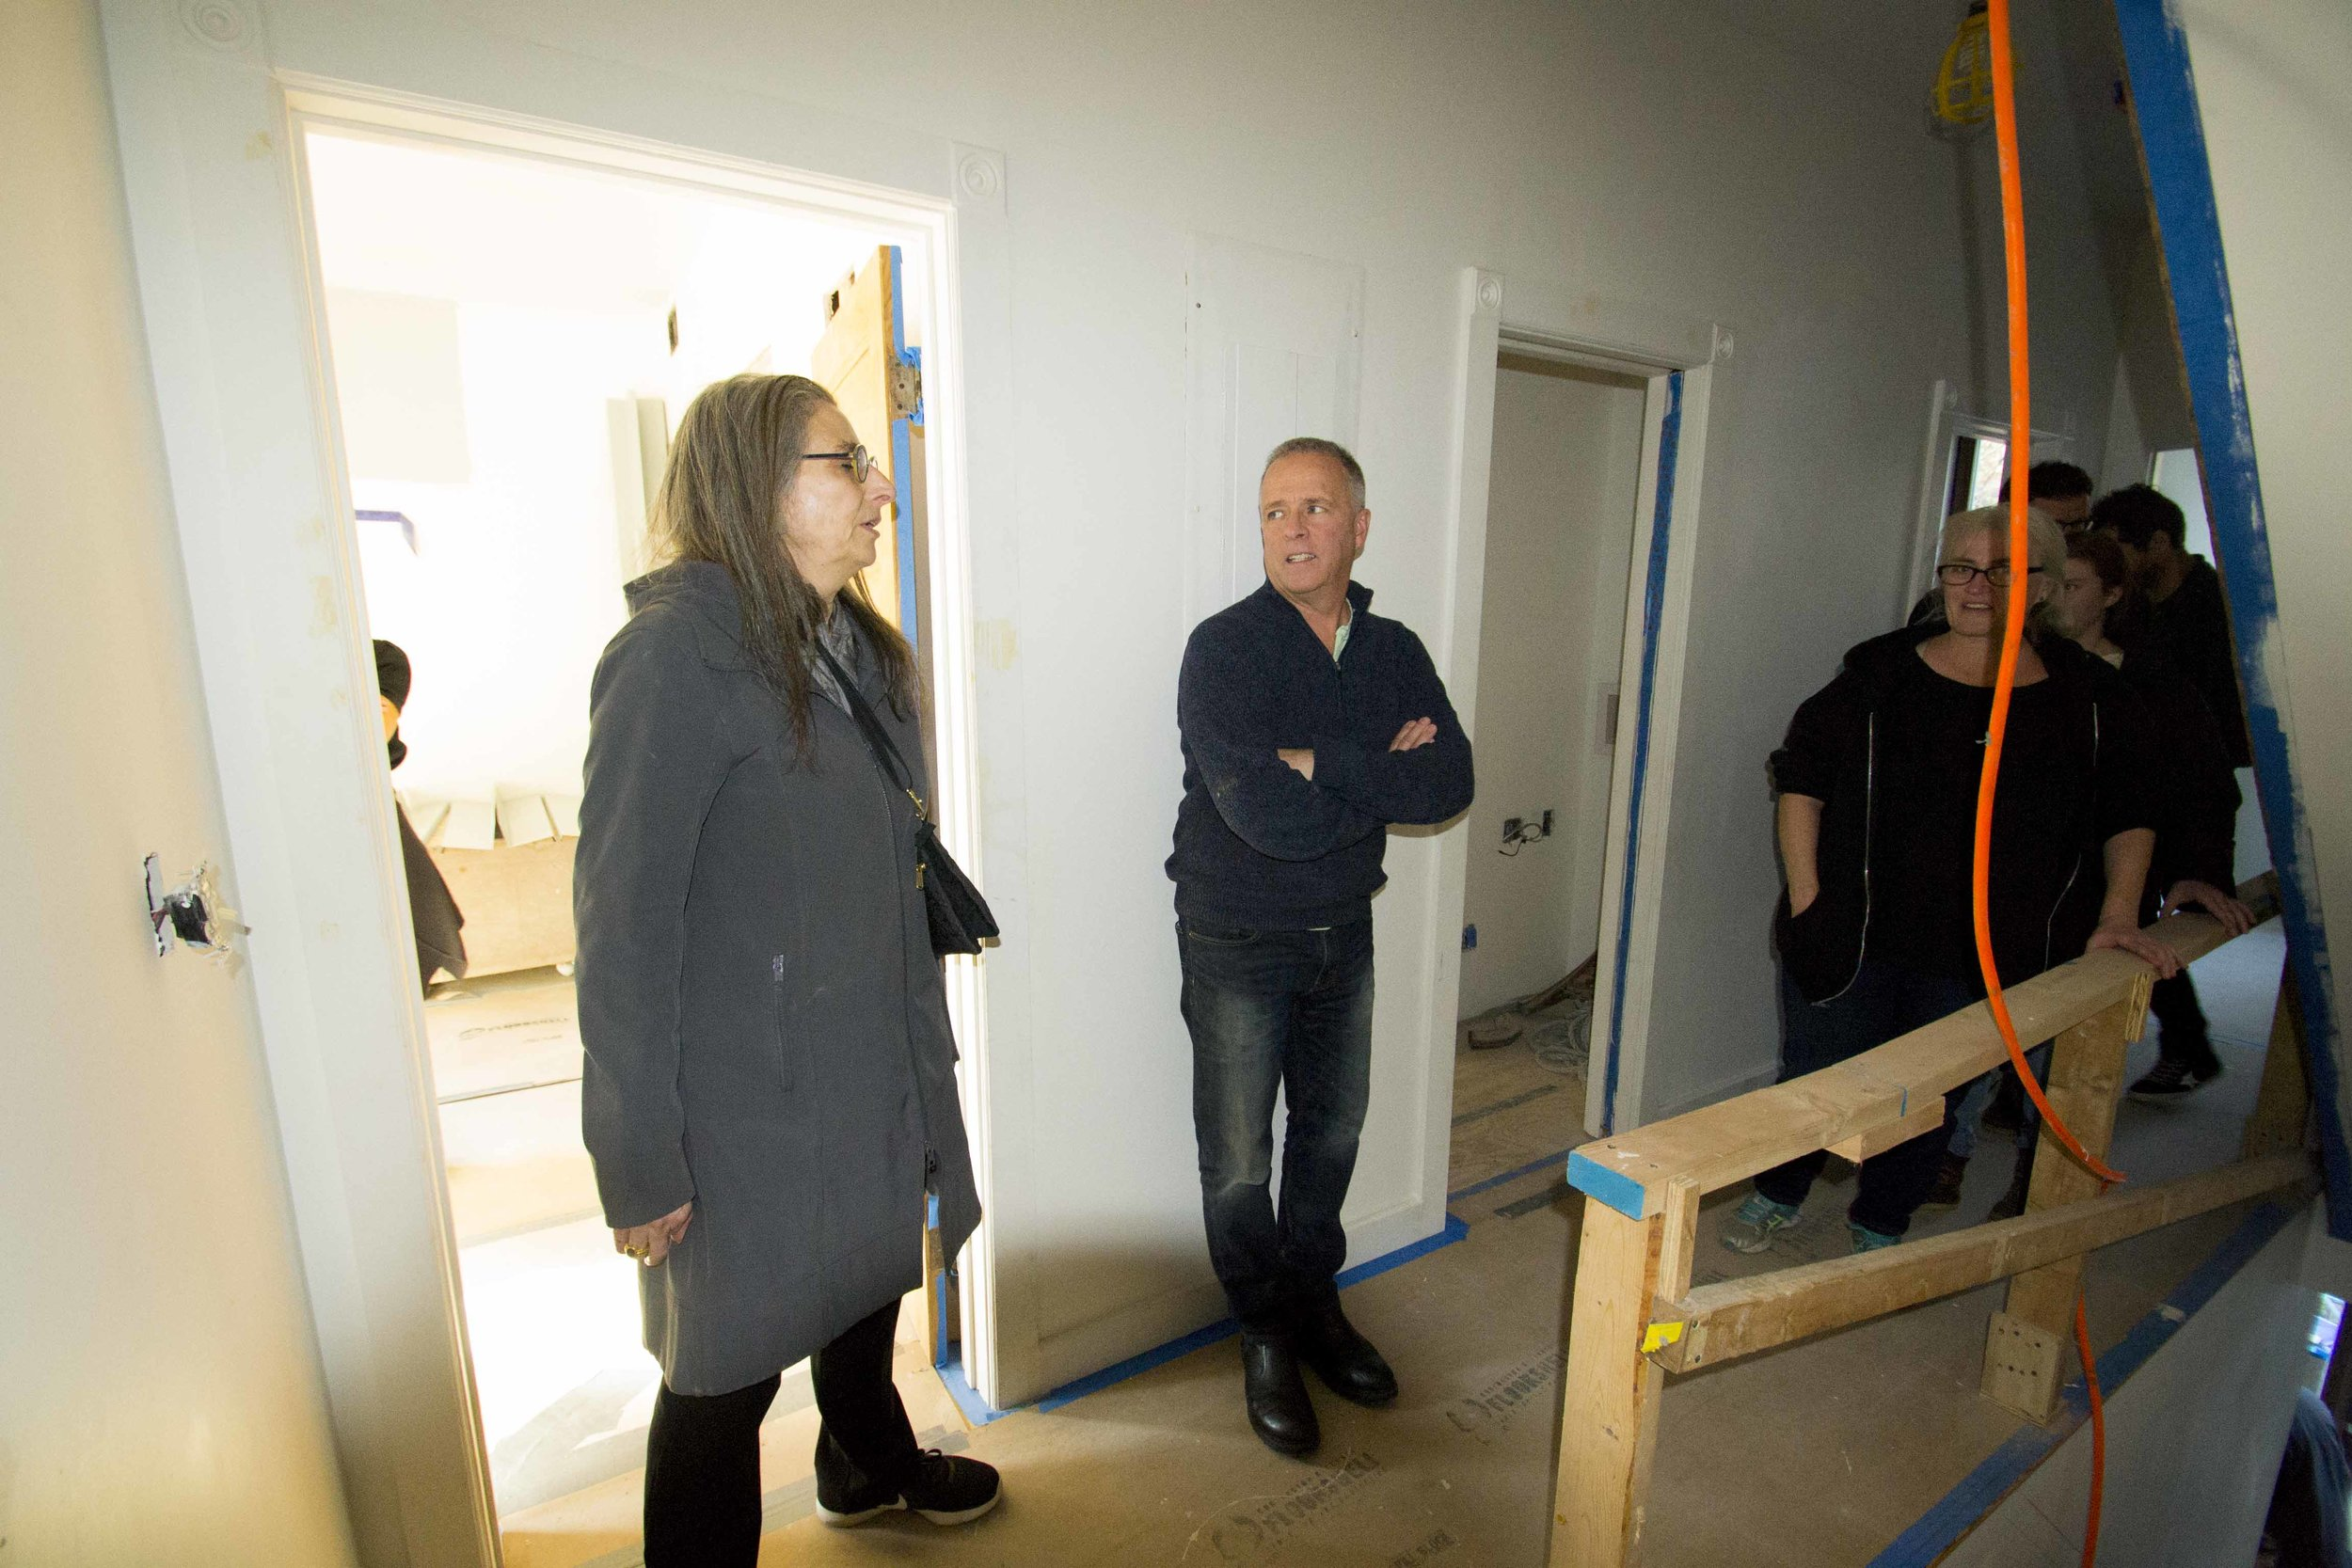 20161111__NY PASSIVE HOUSE DAYS_OPEN HOUSE_PAUL CASTRUCCI ARCHITECT__0026_lowres.jpg